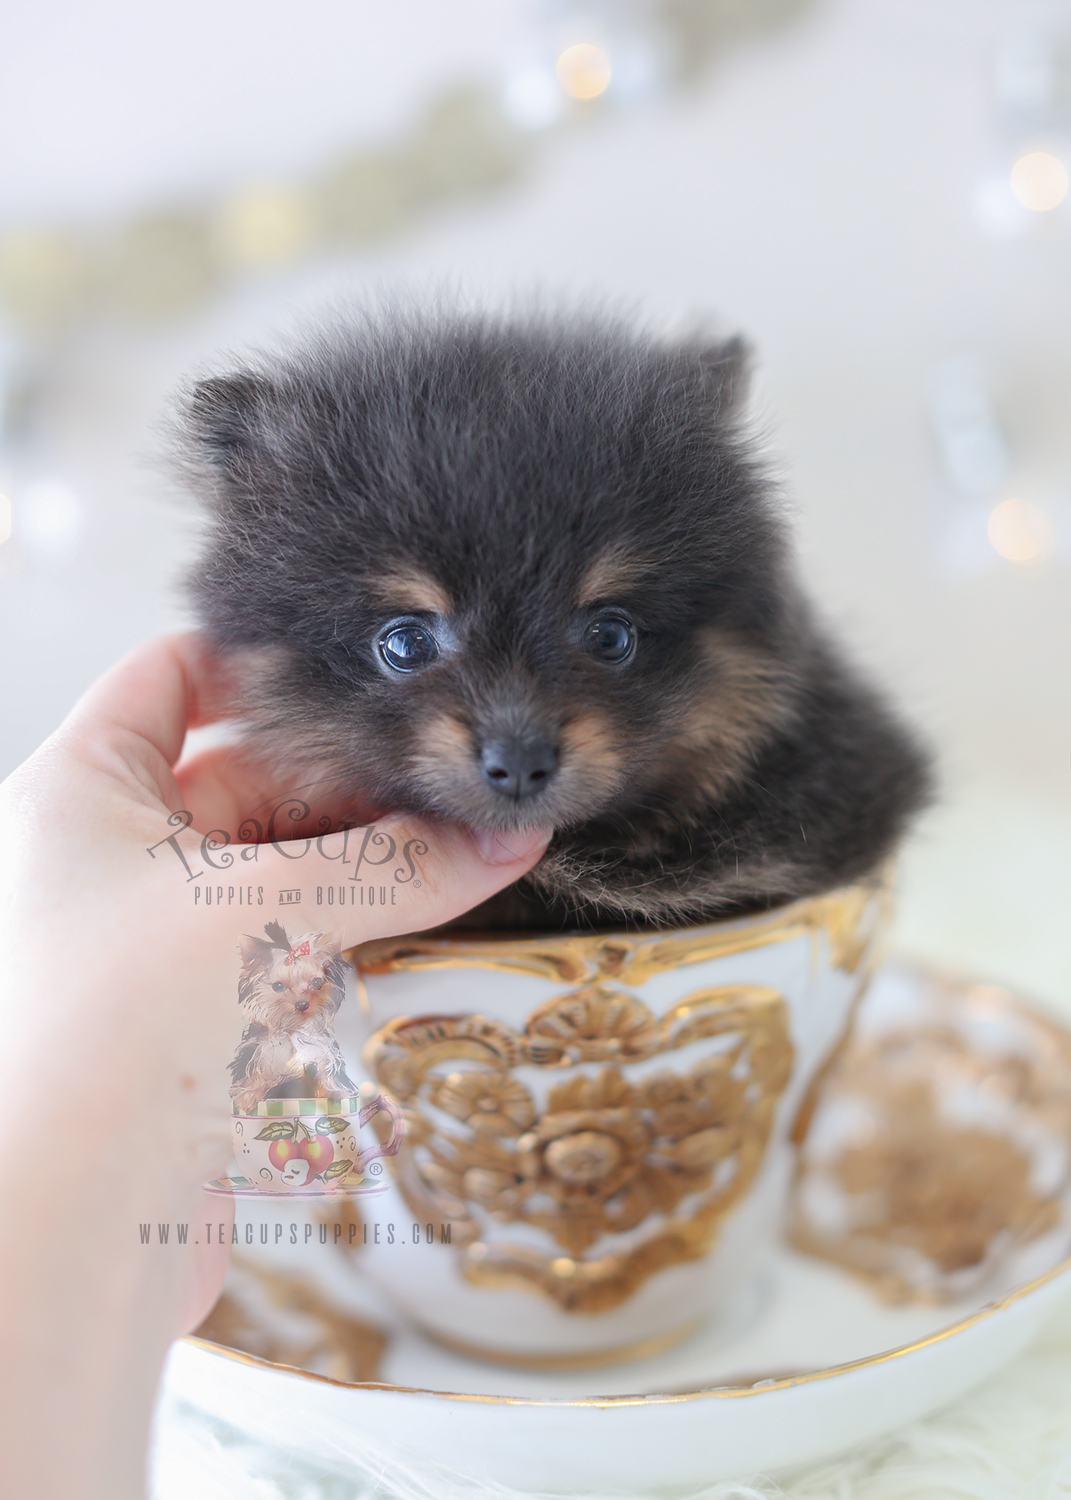 For Sale #311 Teacup Puppies Pomeranian Puppy